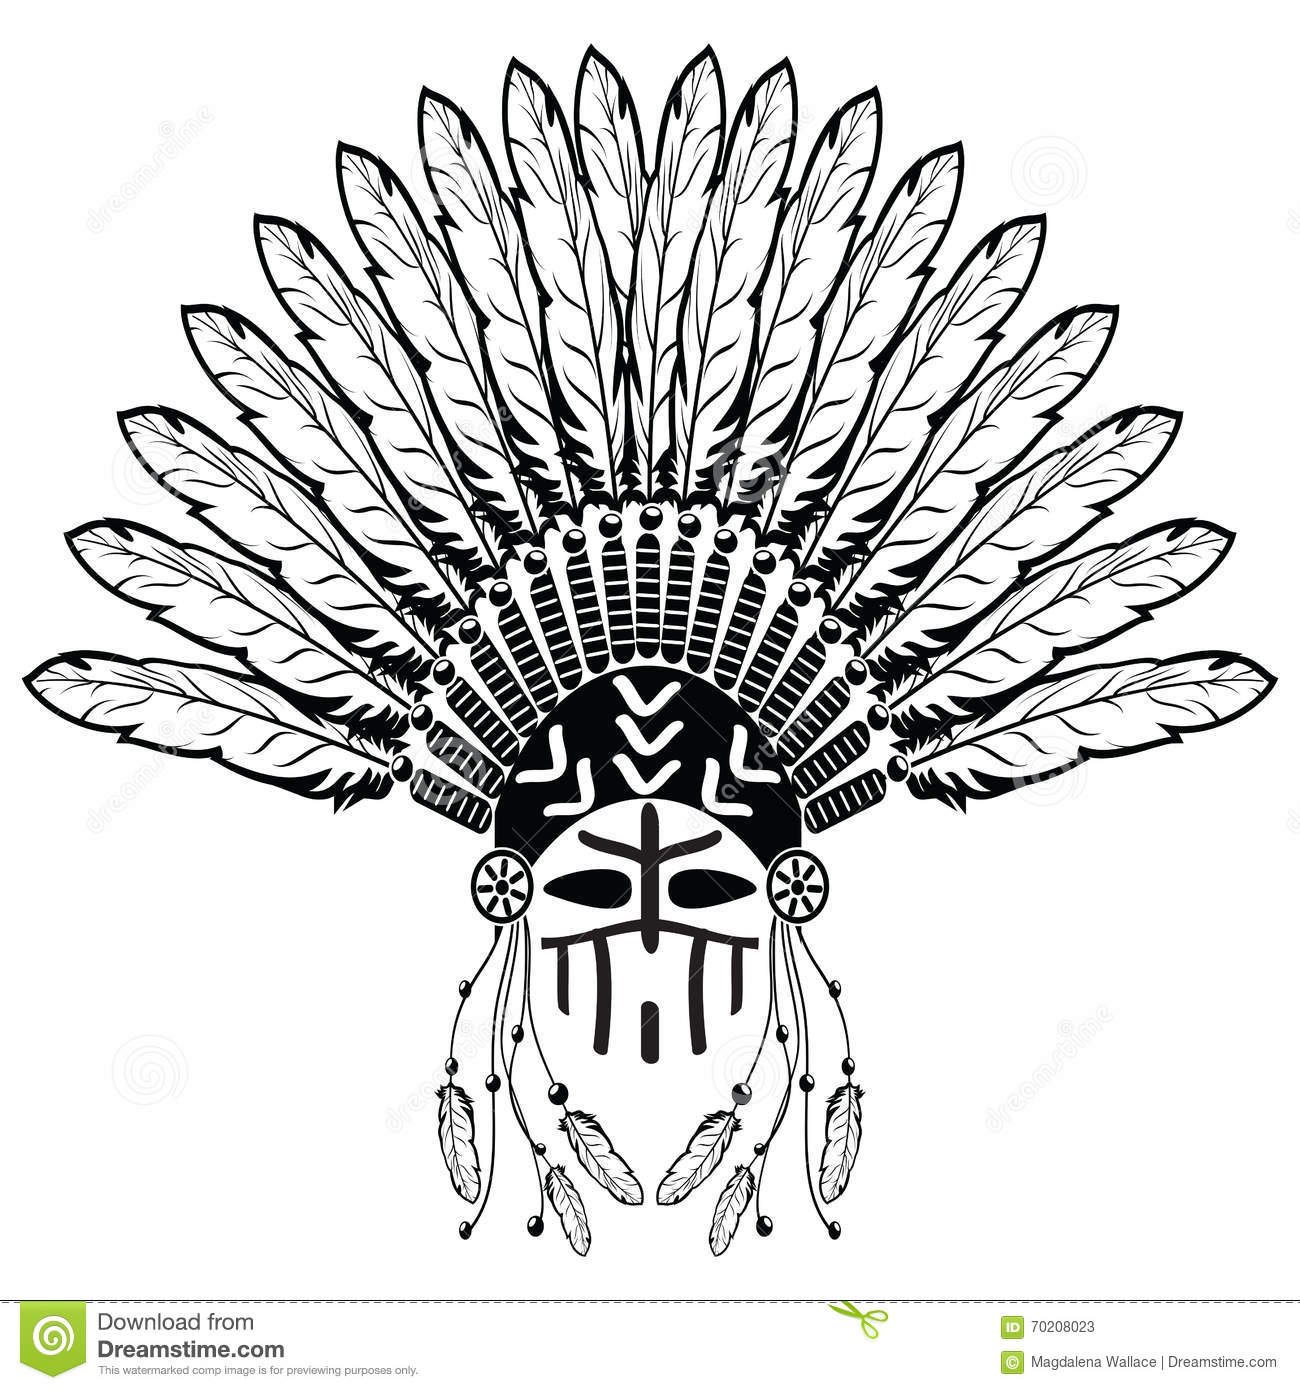 Native american ornaments - Aztec Ethnic Style Headdress With Plain Feathers Beads Symbolizing Native American Tribes And Warrior